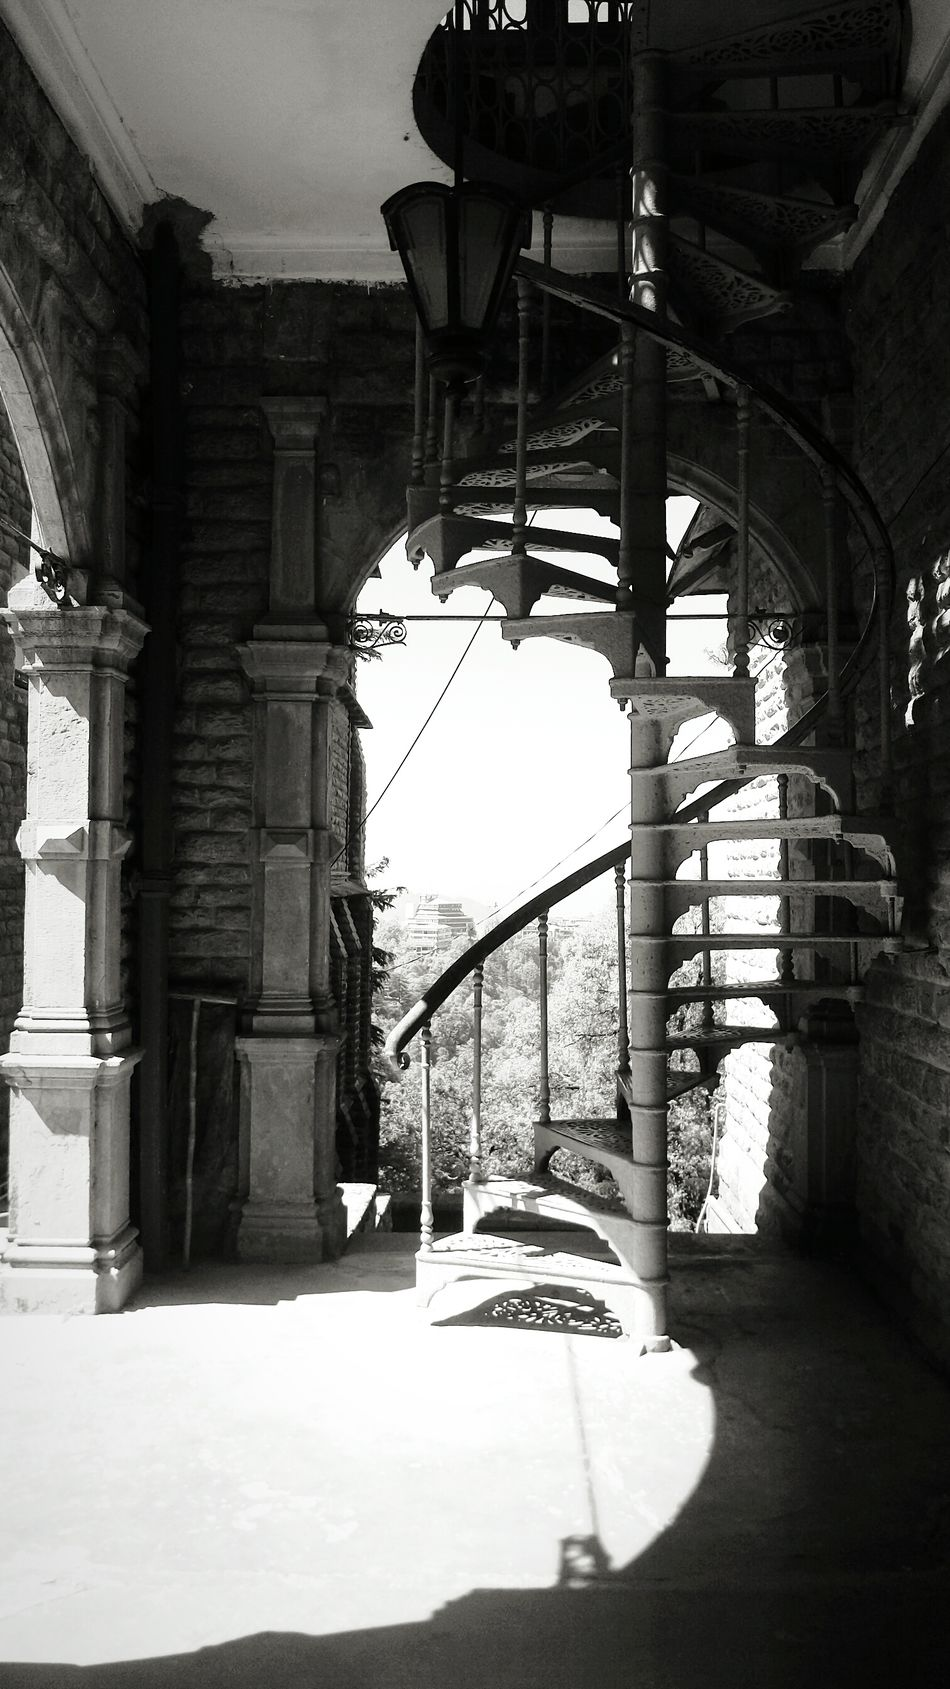 Architecture Arch Gate Built Structure No People Black And White Black And White Photography B/w Nature Historical Site Historical Buildings Historic Site Palaces Palace History Place History Architectural Column Architecture Staircases Stairsandsteps Stairs_steps Stairs Stair Staircase Travel Destinations Day